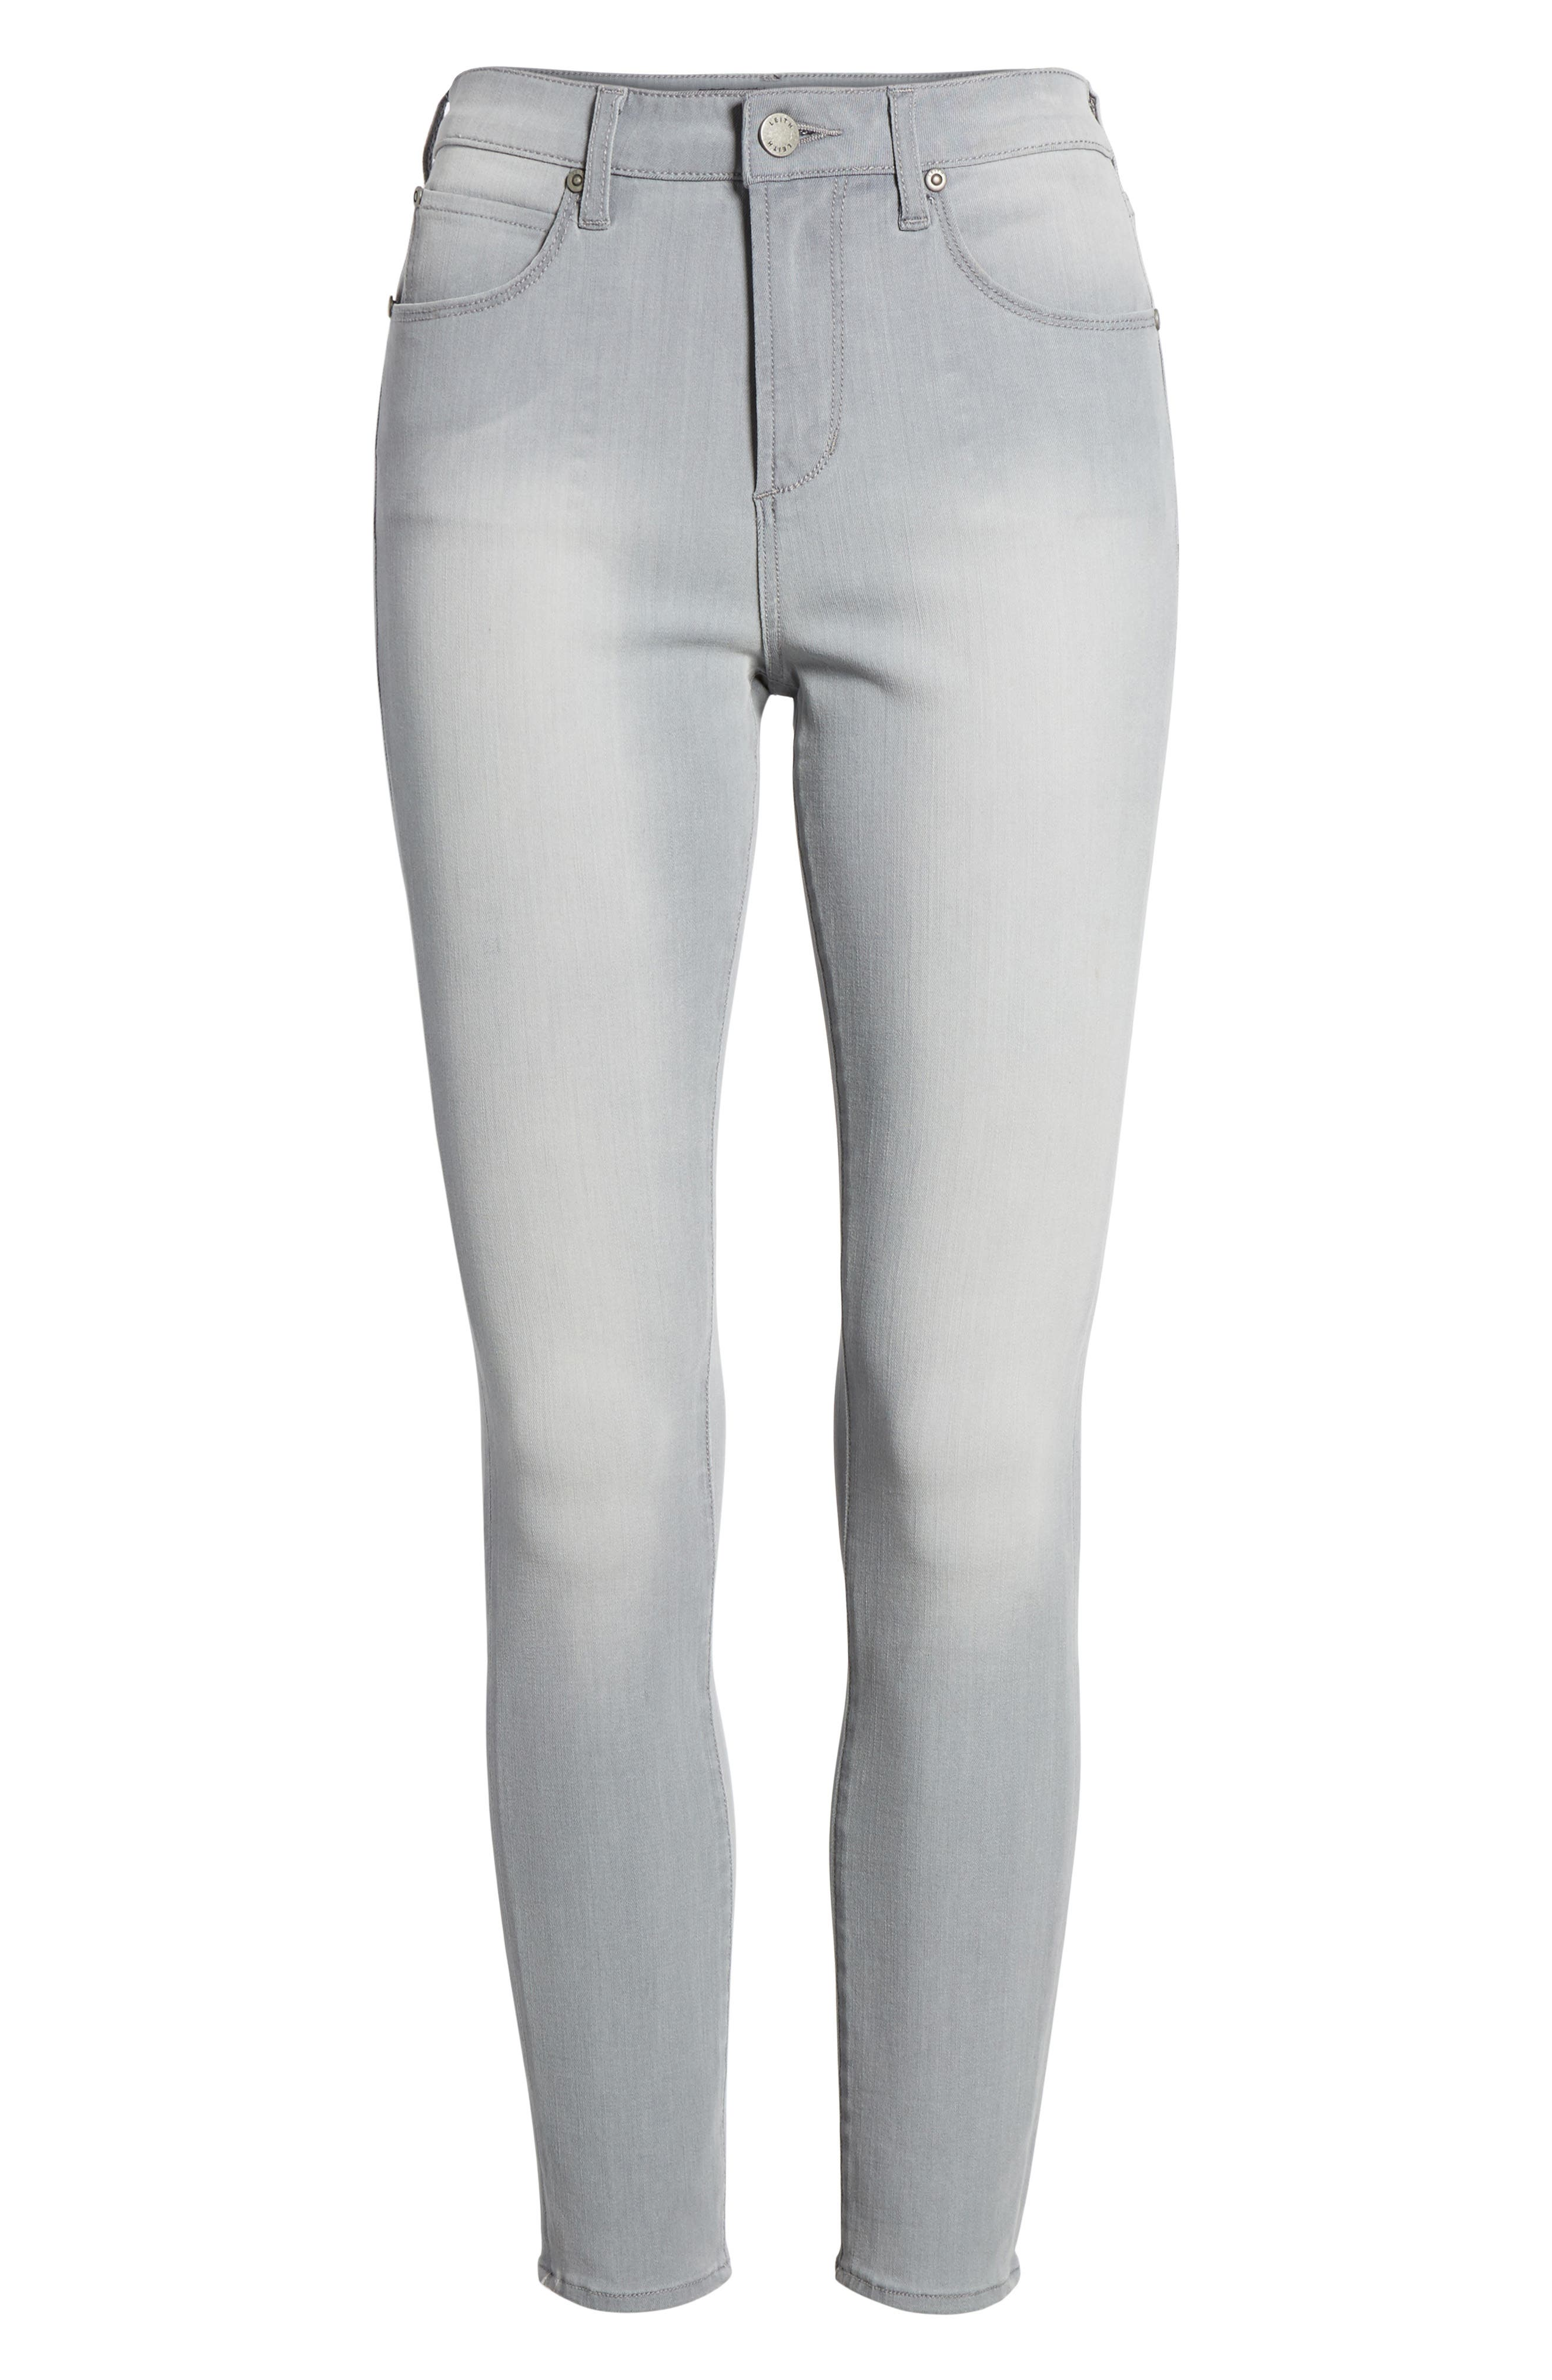 High Waist Skinny Jeans,                             Alternate thumbnail 7, color,                             Grey Wash